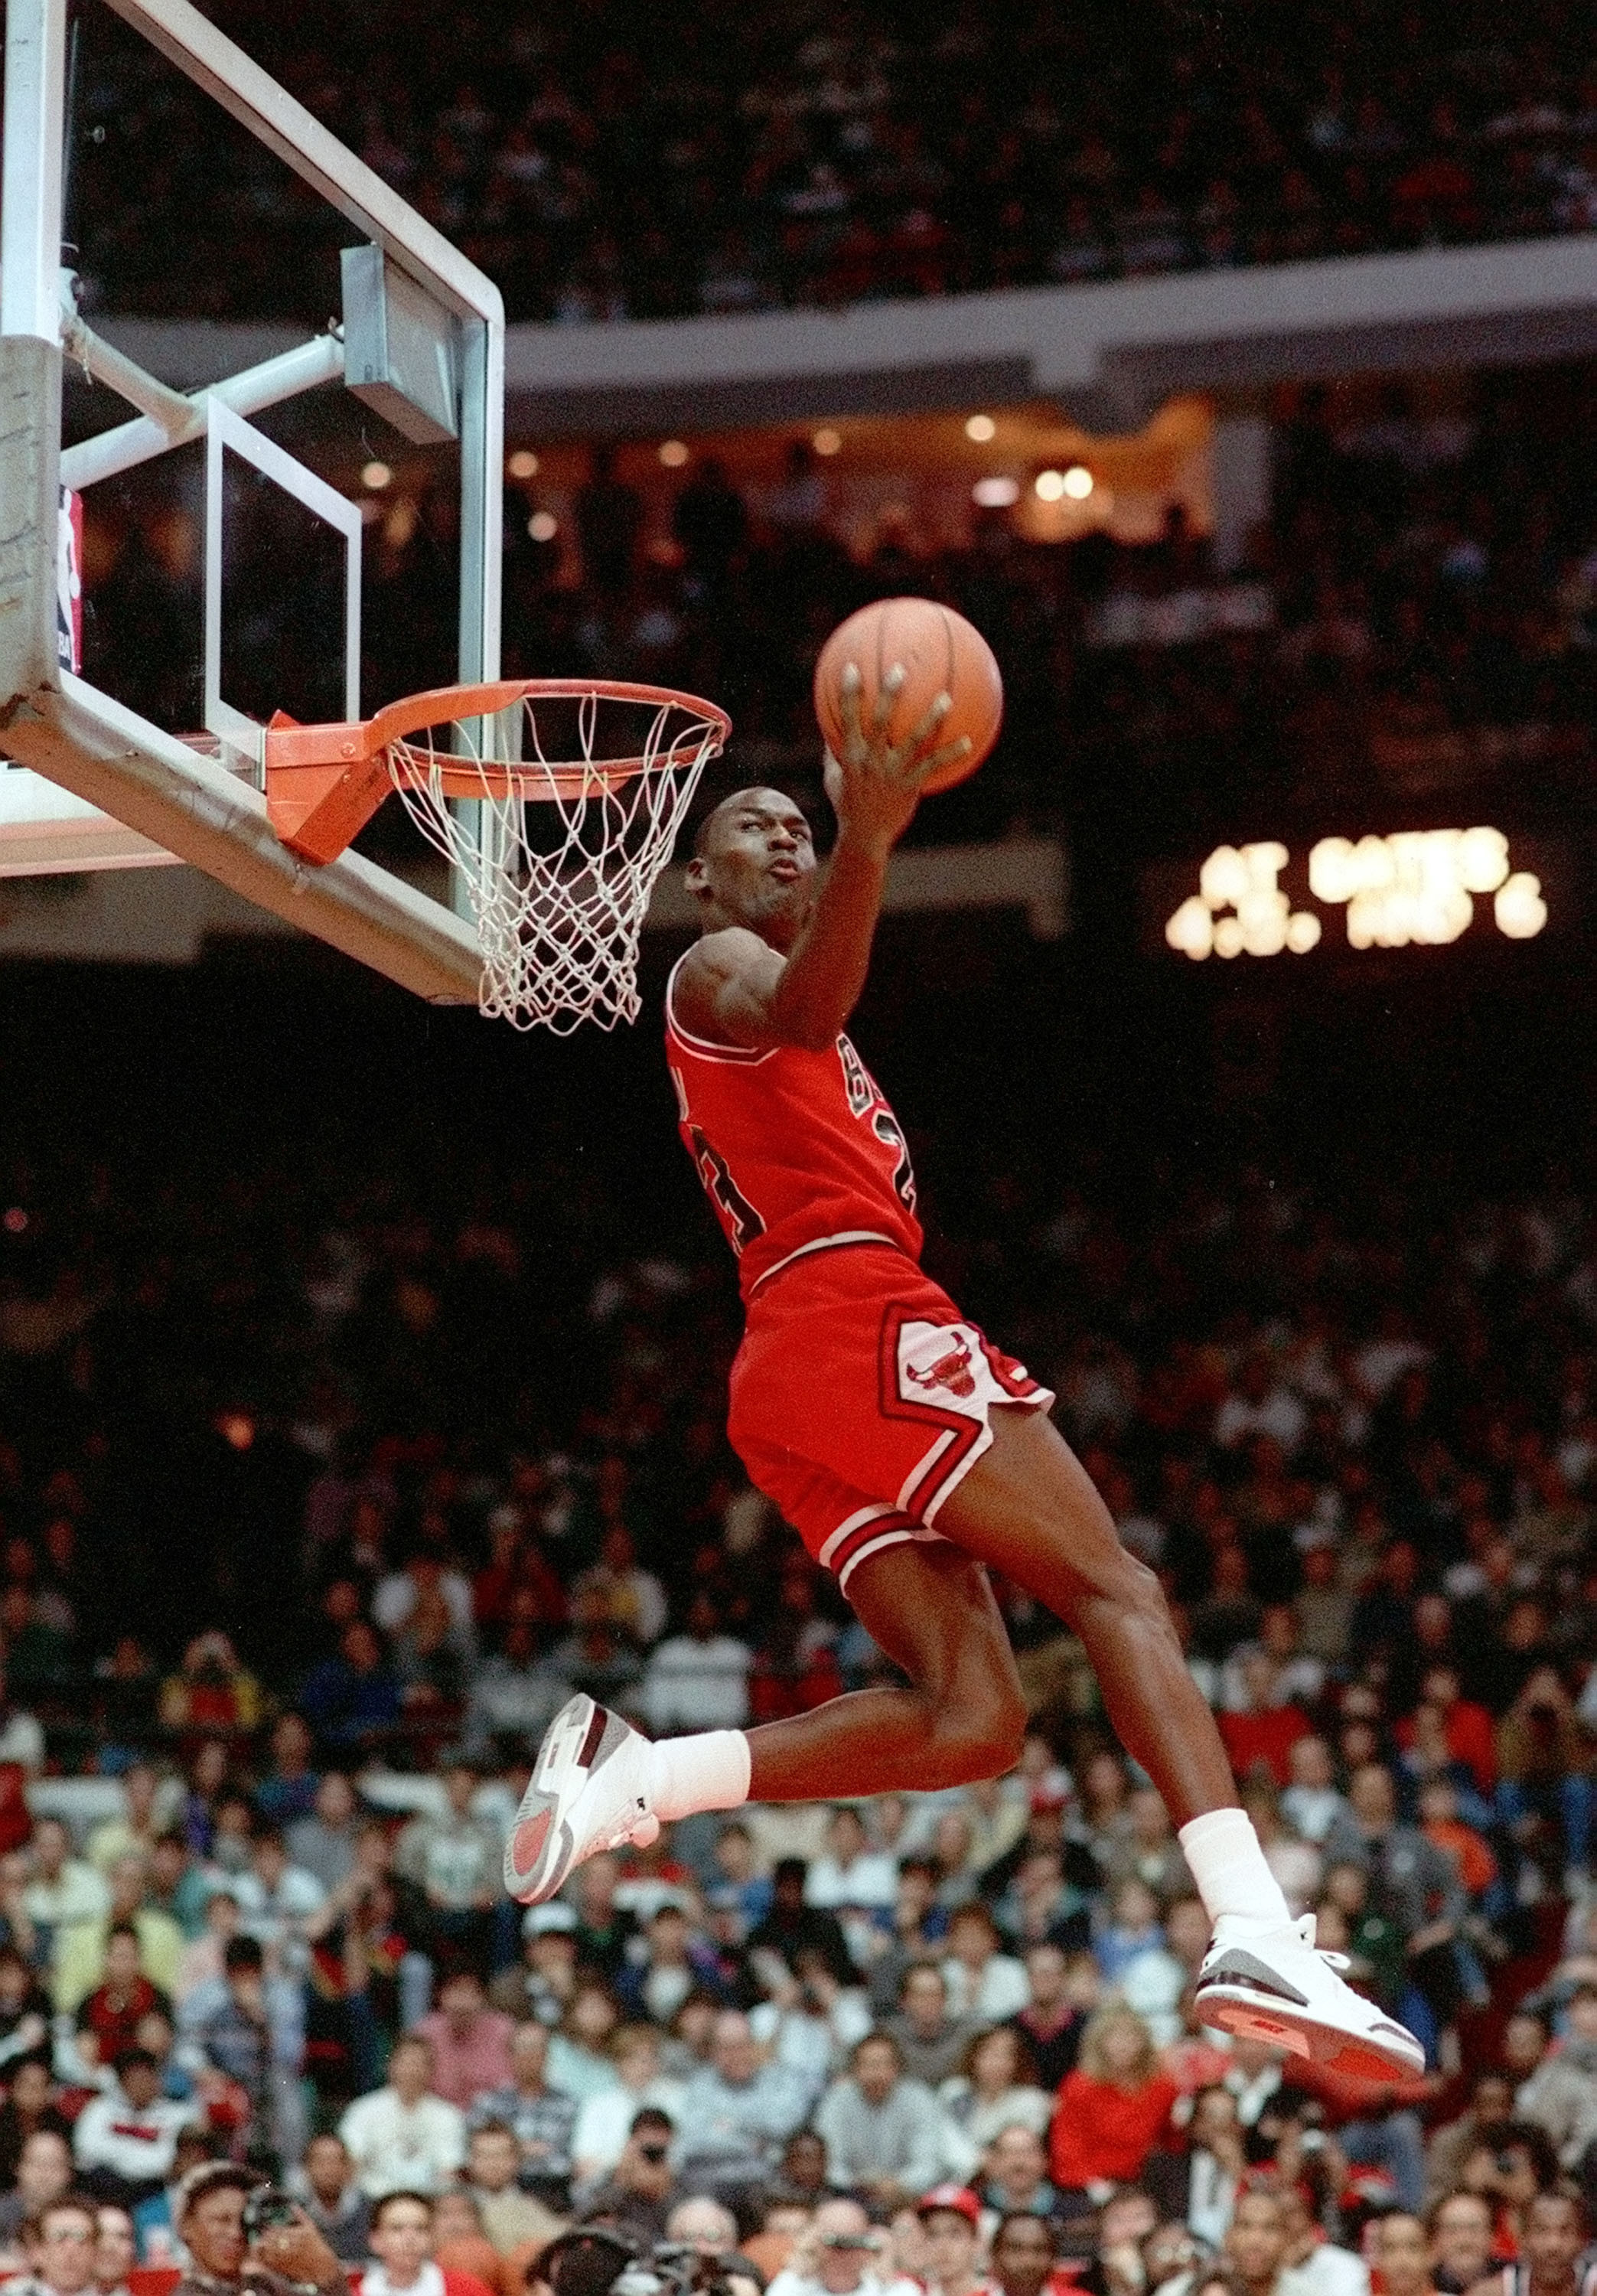 Michael Jordan when asked admitted that he could fly even if it was briefly!